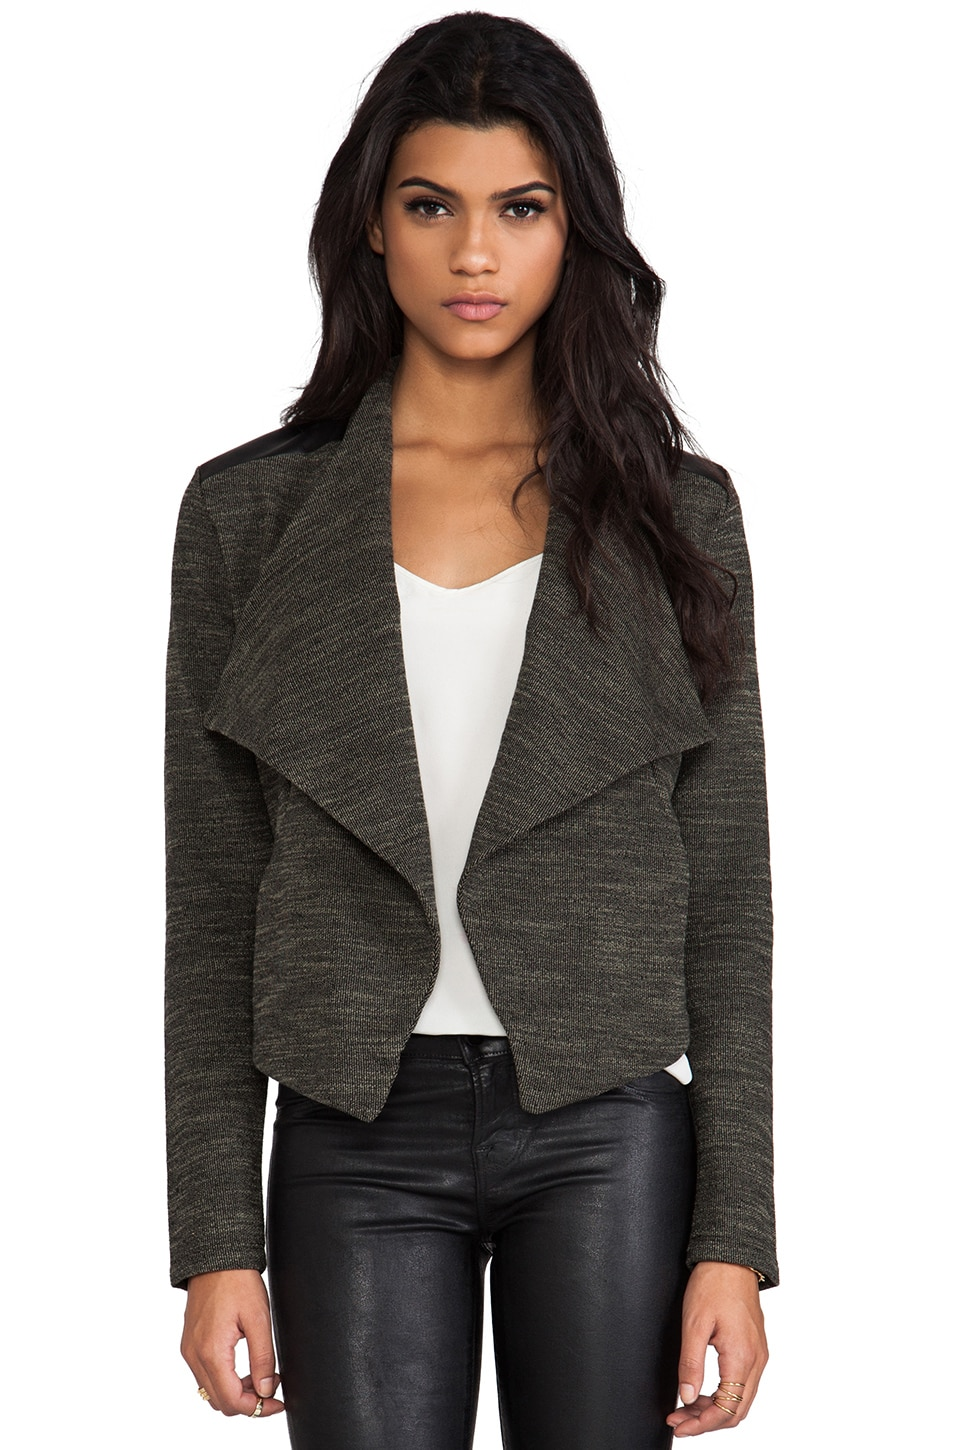 BB Dakota Hedia Jacket in Spring Olive